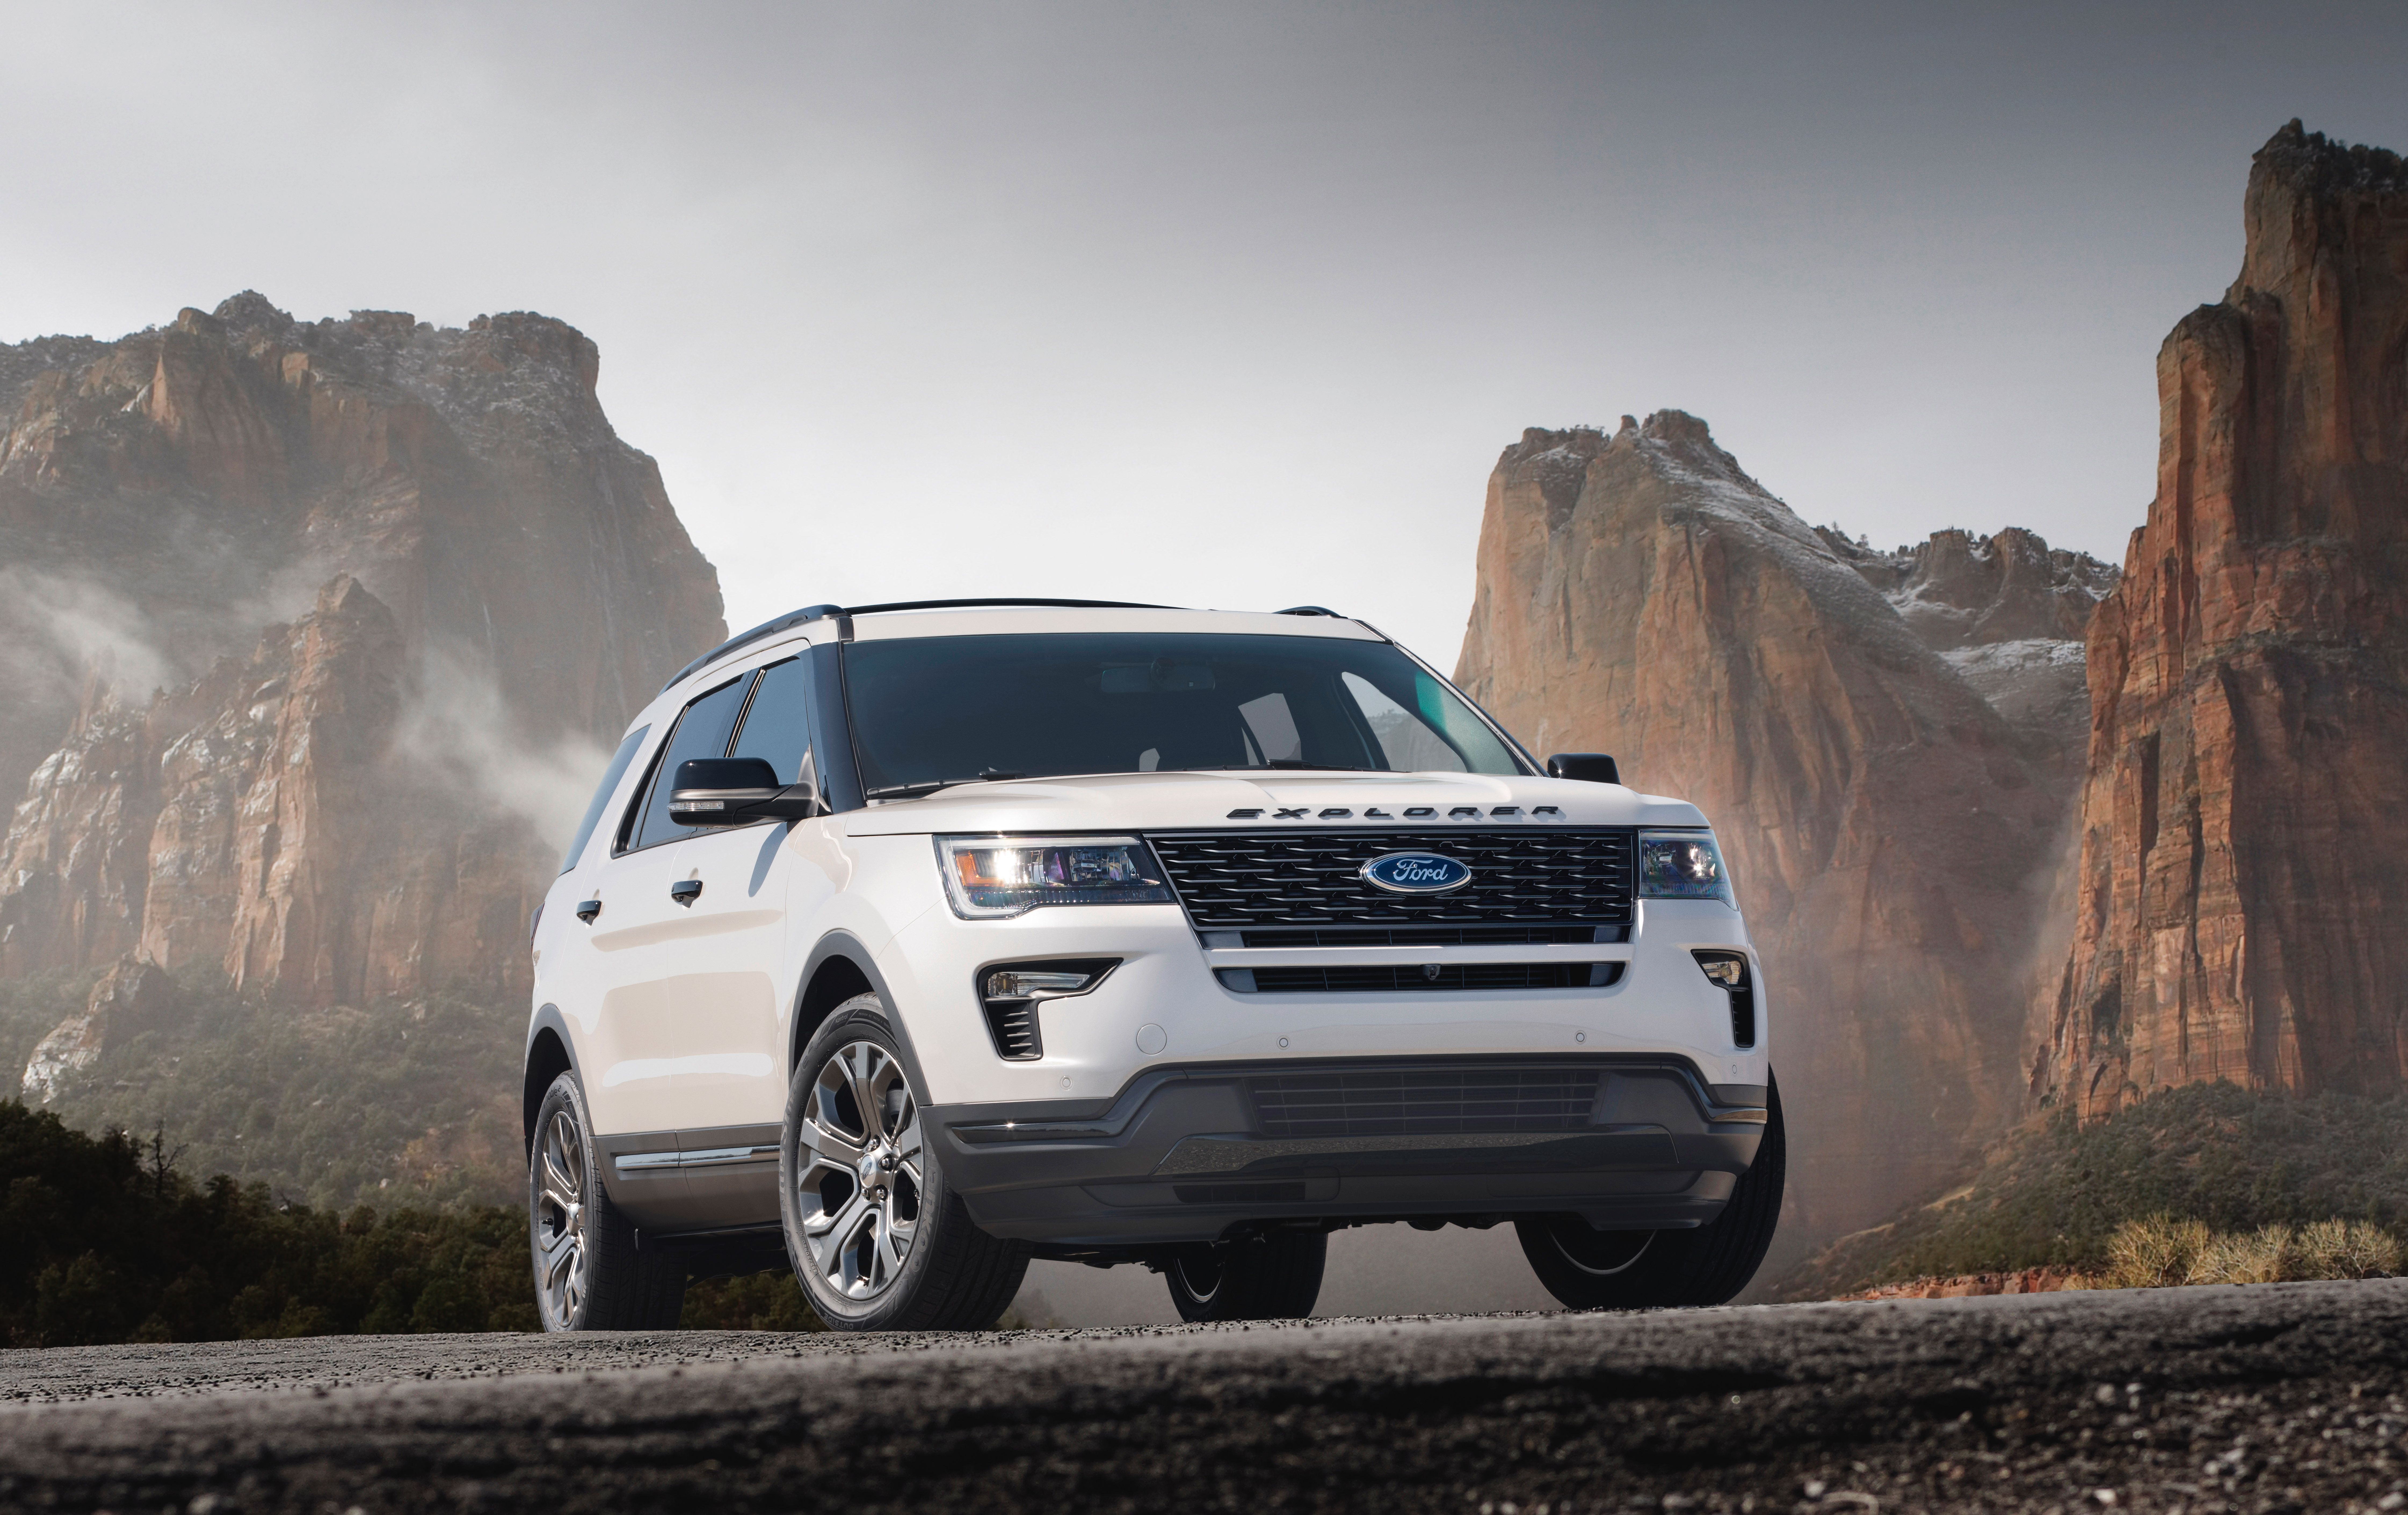 Ford Updates Looks Of The 2018 Explorer Suv With New Grille Ford